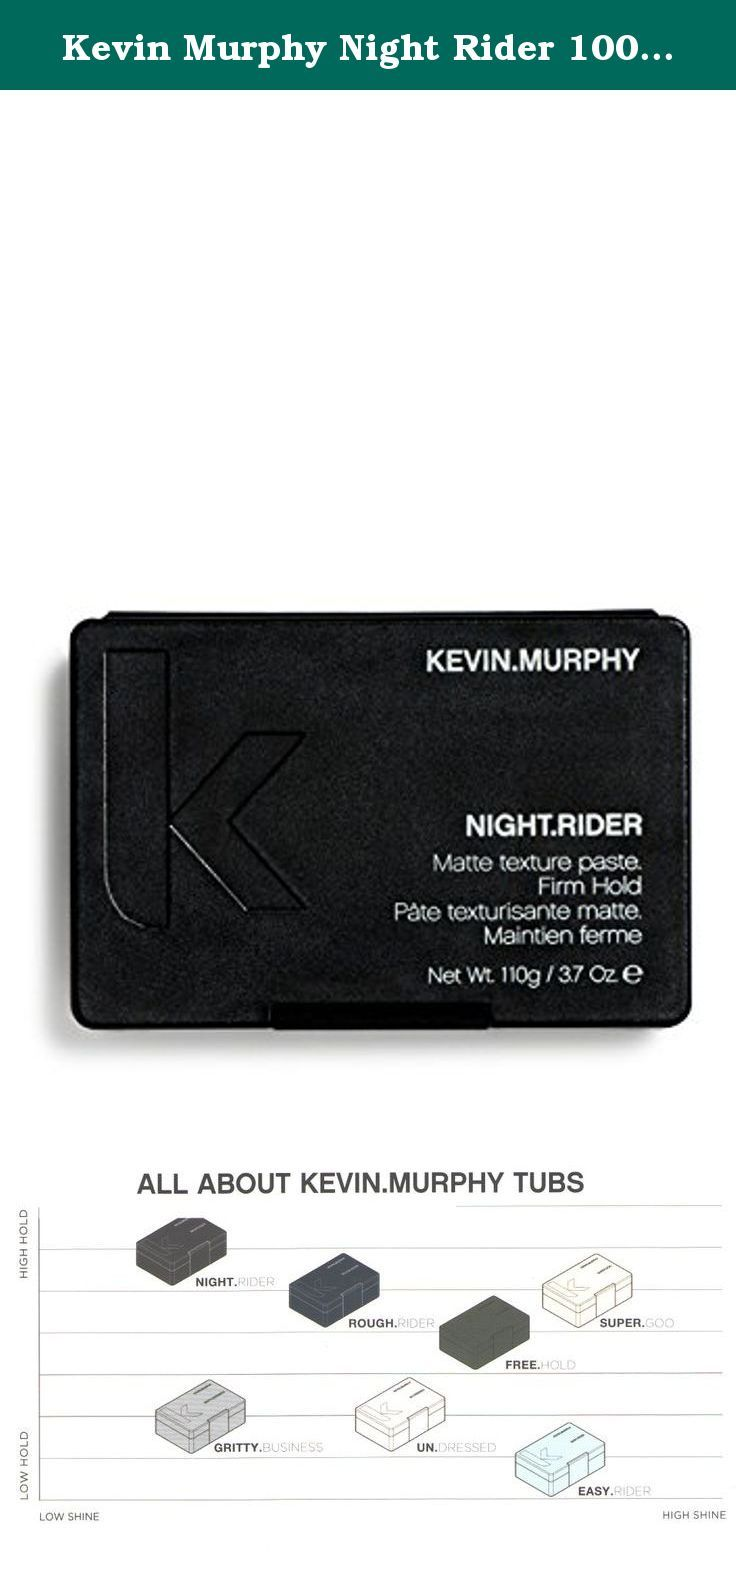 Kevin Murphy Night Rider 100g 3 4oz How To Use Rub A Small Amount Between Palms And Distribute Evenly Through Da Paraben Free Products Dry Hair Kevin Murphy